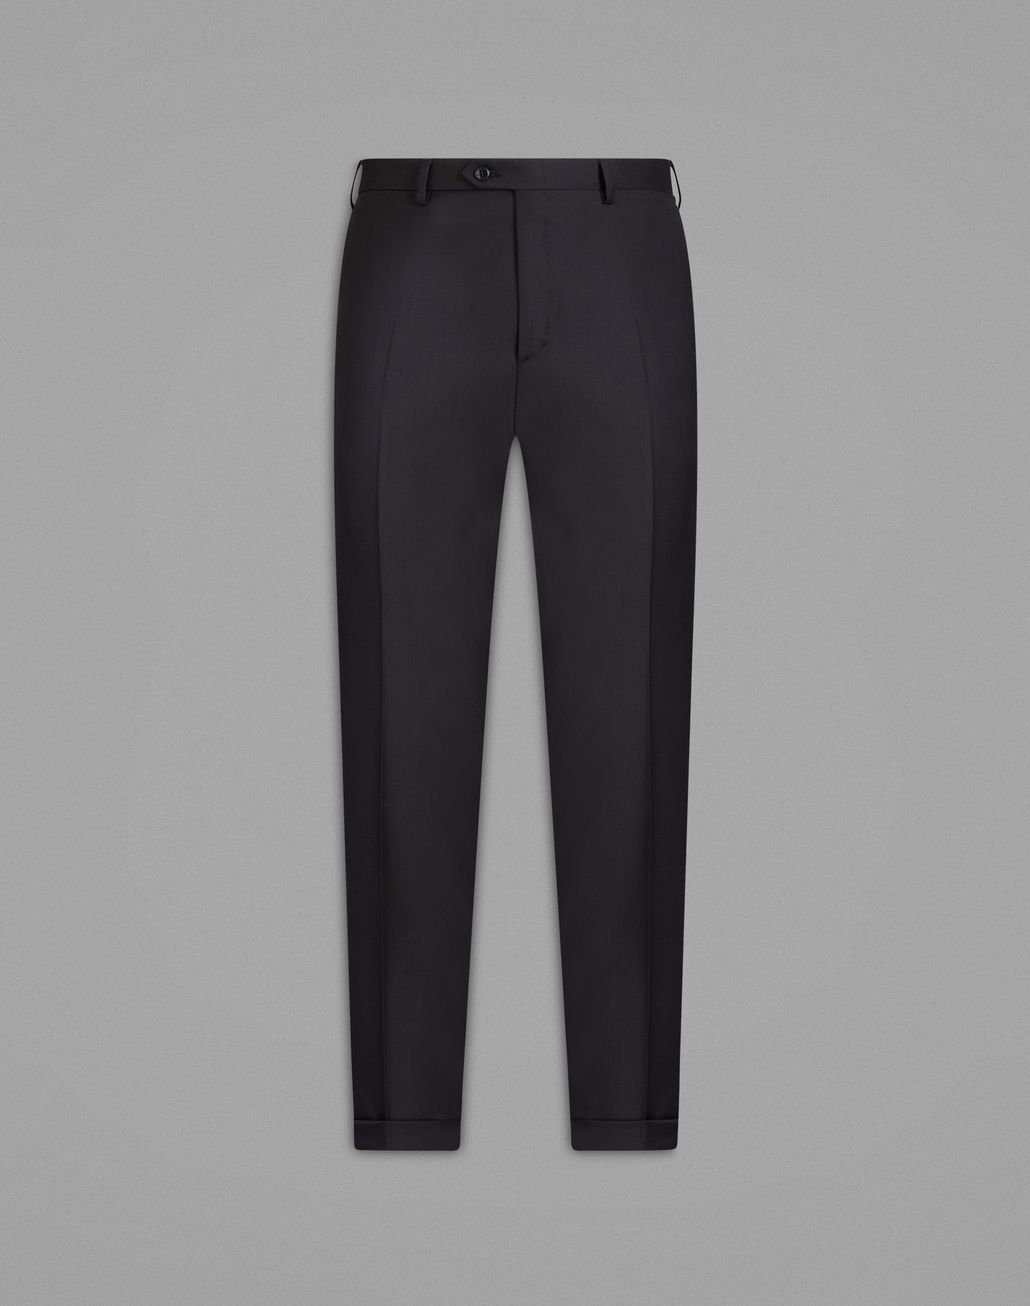 BRIONI  'Essential' Black Tigullio Trousers Trousers Man f